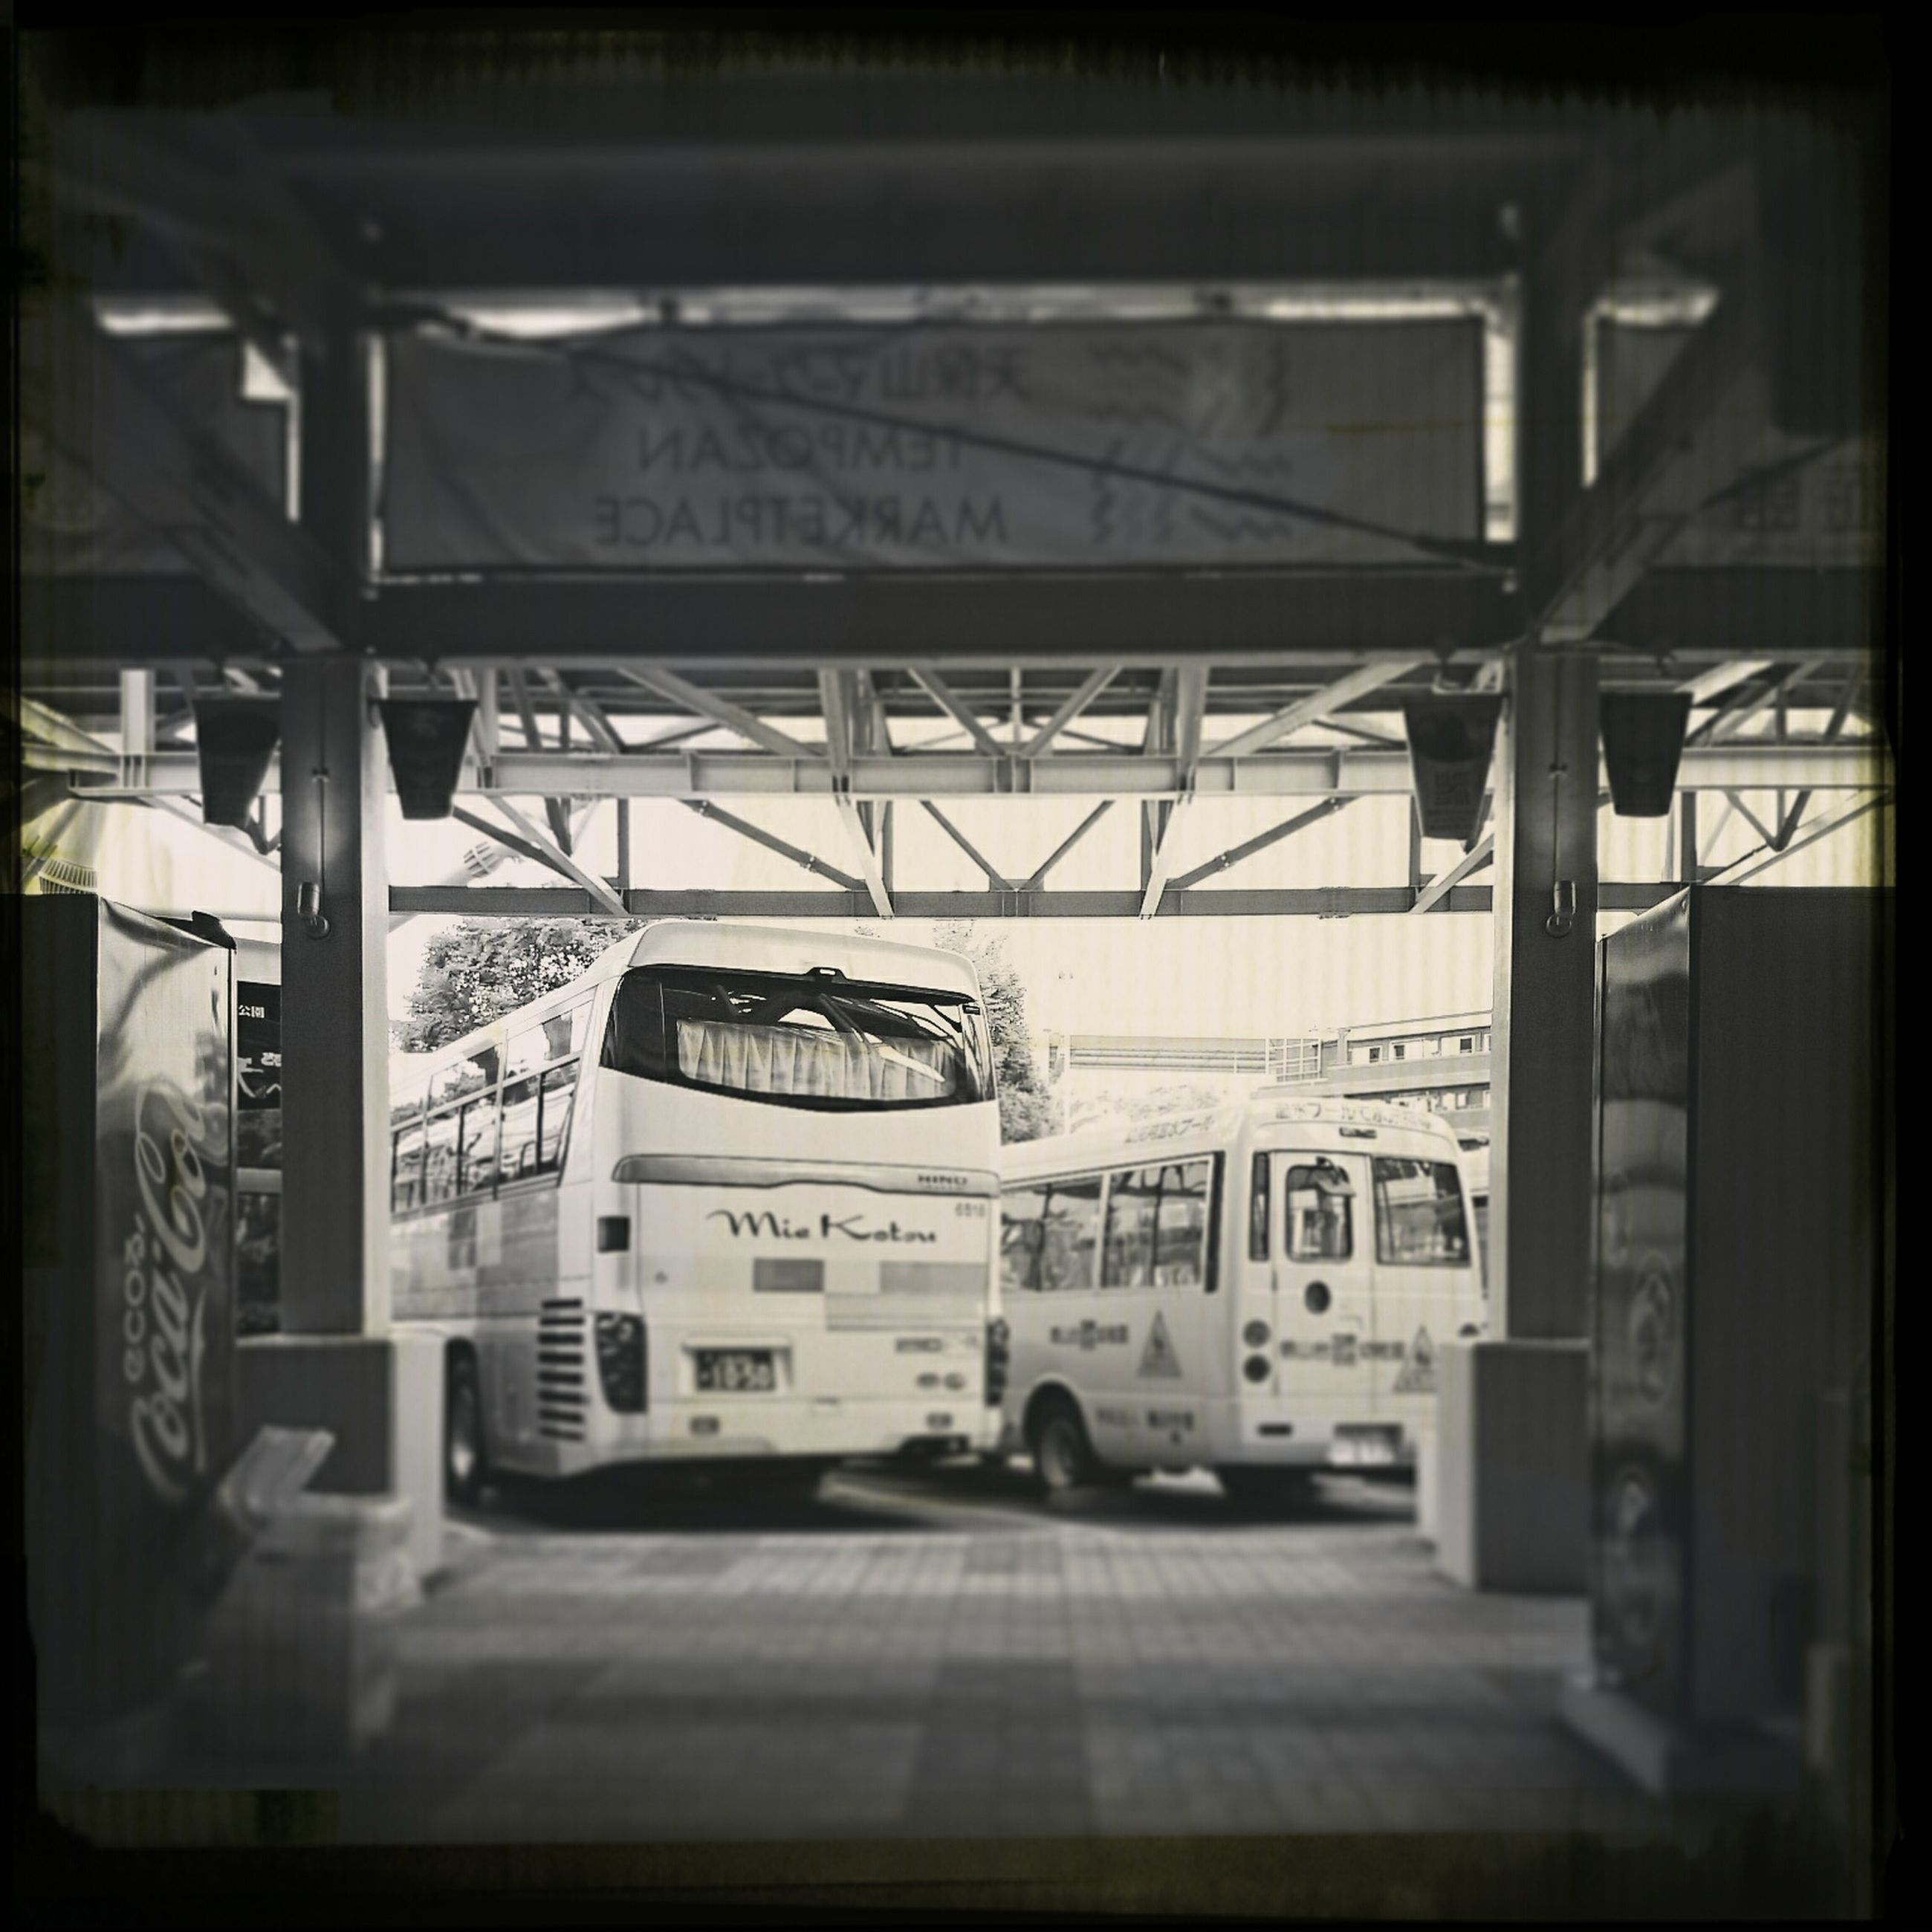 transportation, indoors, mode of transport, architecture, built structure, land vehicle, transfer print, car, auto post production filter, empty, public transportation, travel, absence, day, train - vehicle, railroad station, no people, interior, window, incidental people